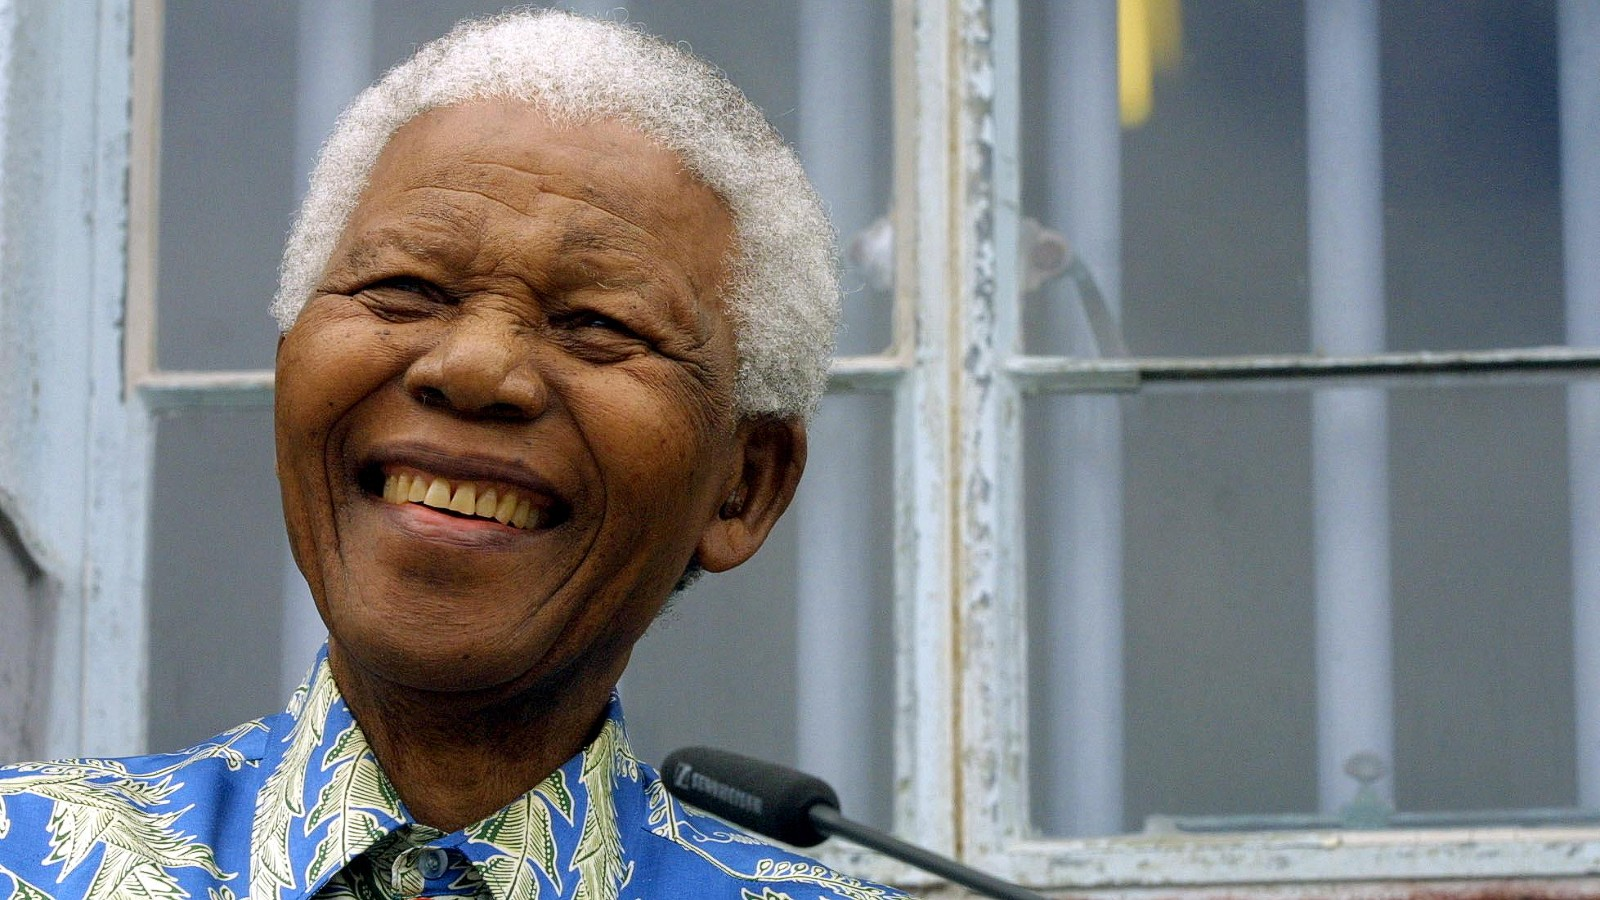 Nelson Mandela: 10 surprising facts you probably didn't know